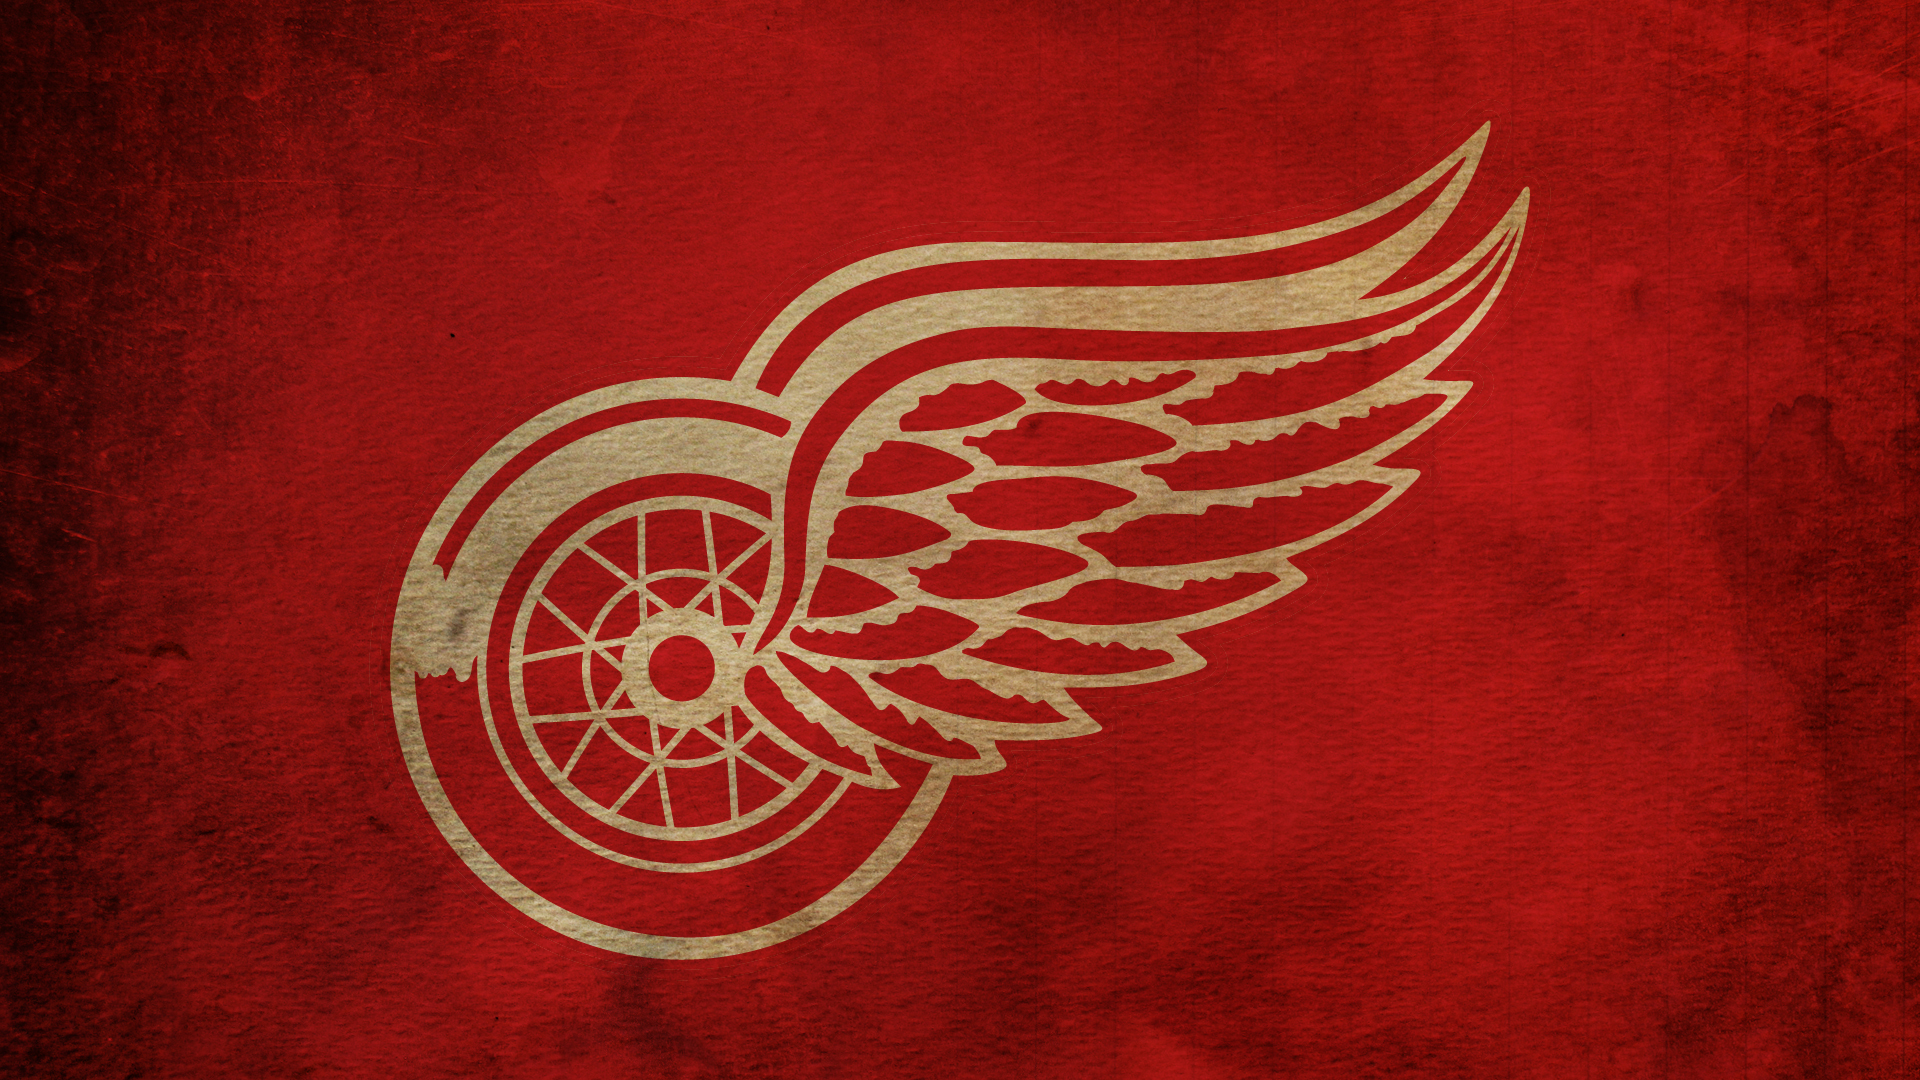 Detroit Red Wings wallpapers Detroit Red Wings 1920x1080